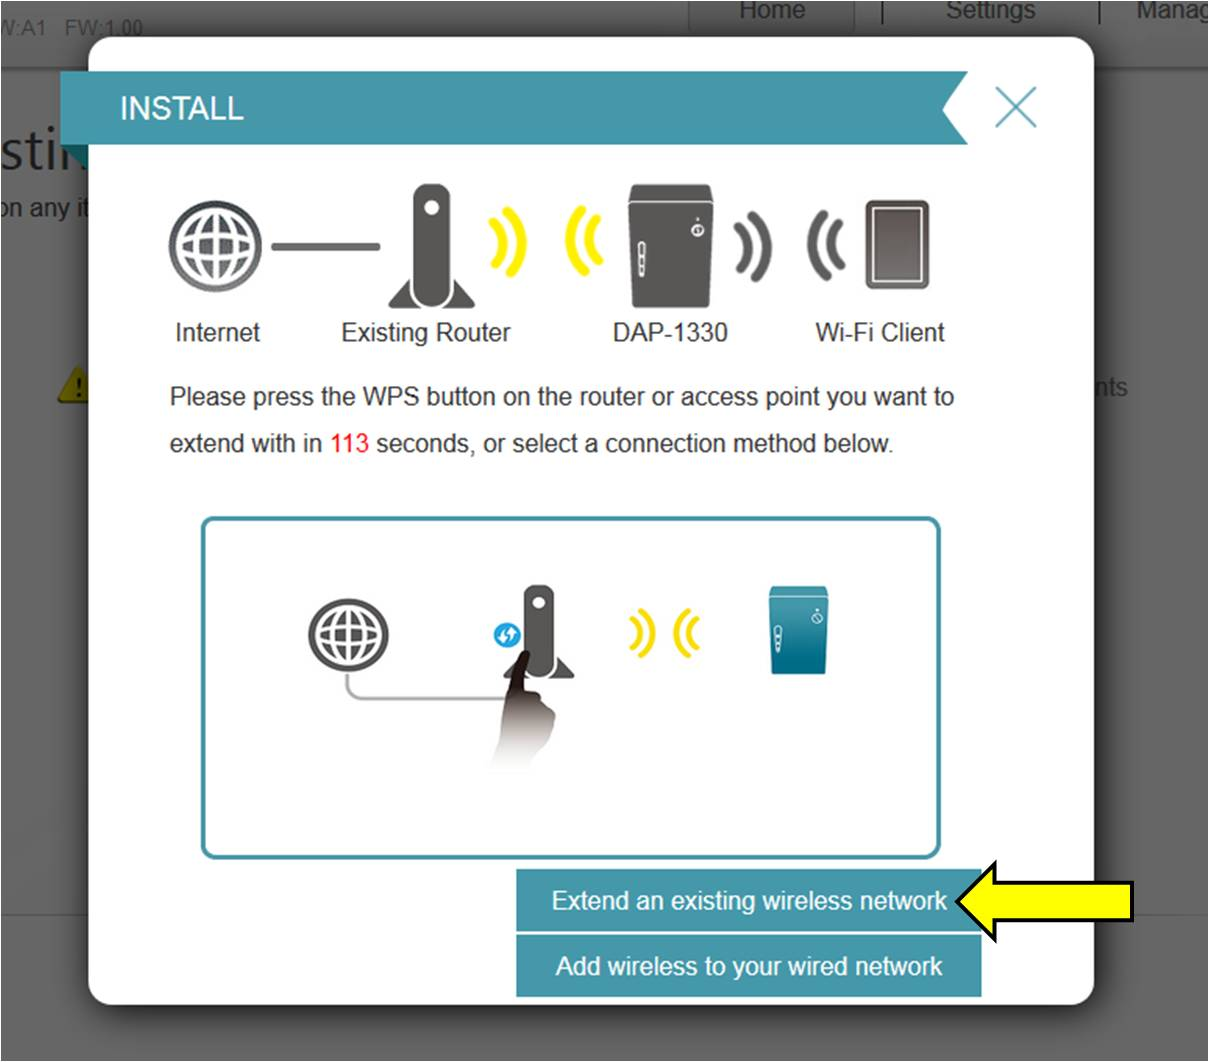 D Link Technical Support Fibe Tv Bell Wiring Diagram Step 4 Select The Option Extend An Existing Wireless Network